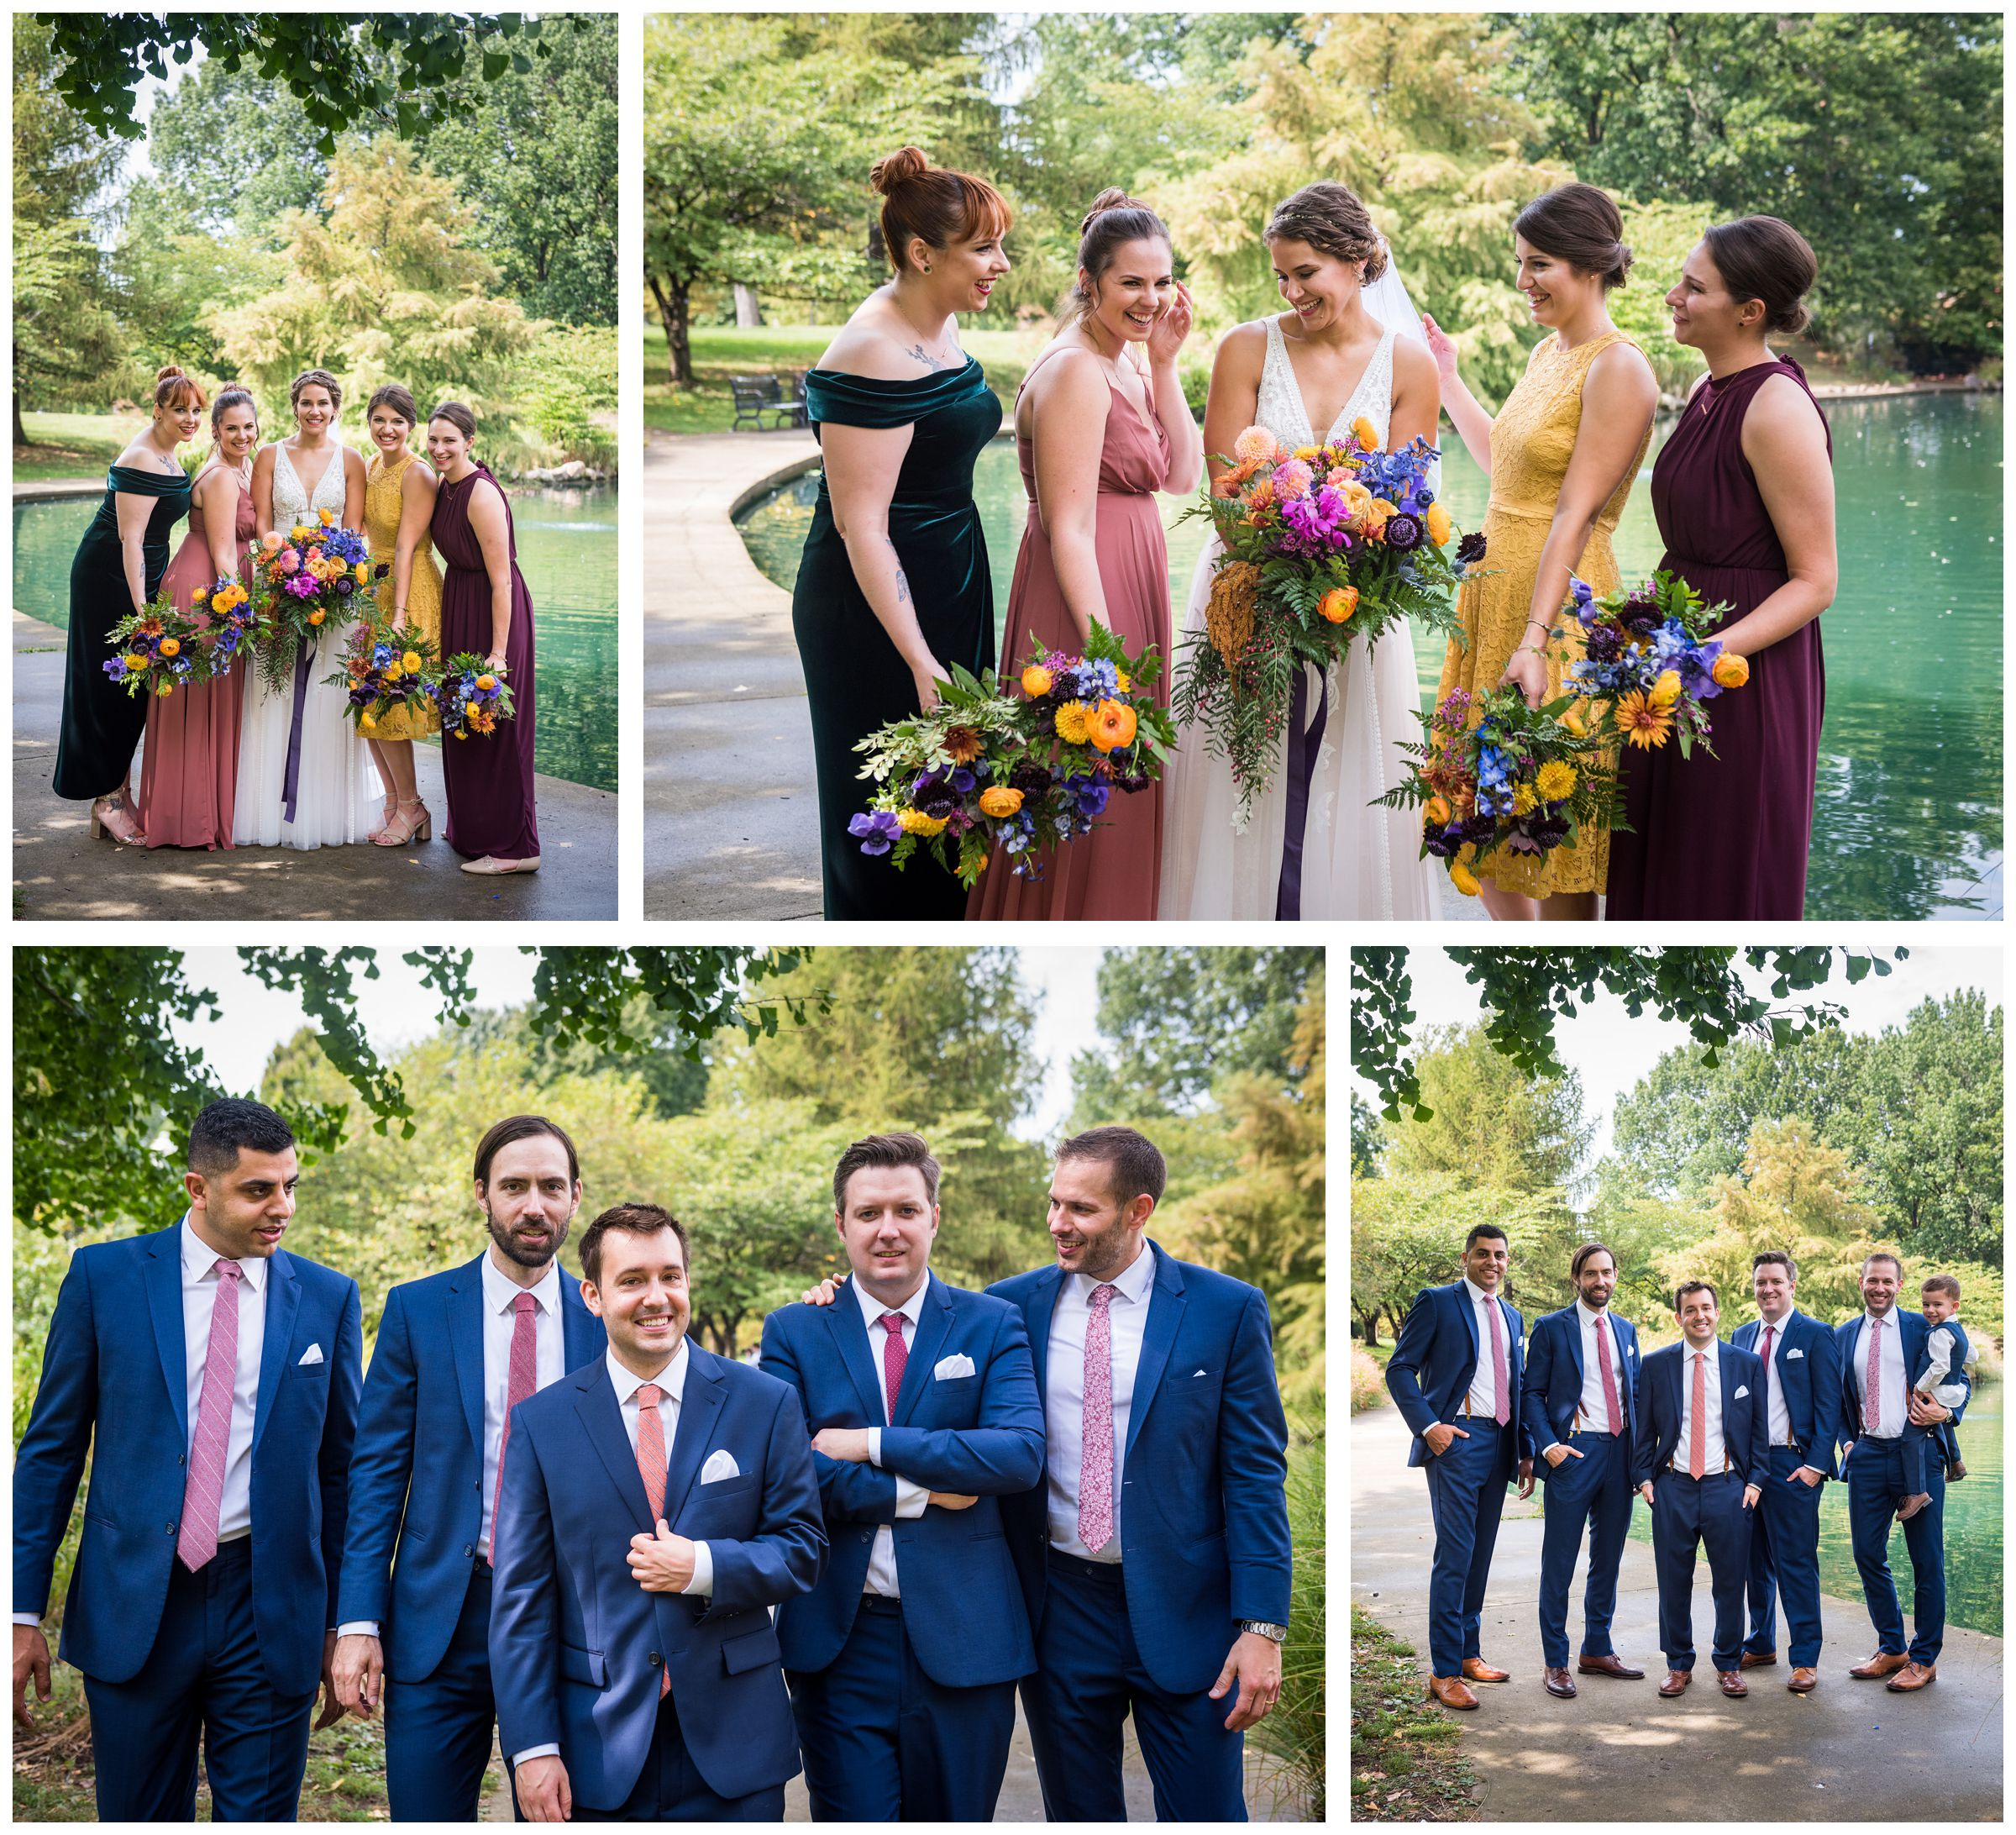 bridesmaids in fall colored dresses and groomsmen in blue suits with red ties during wedding photos at Goodale Park Columbus